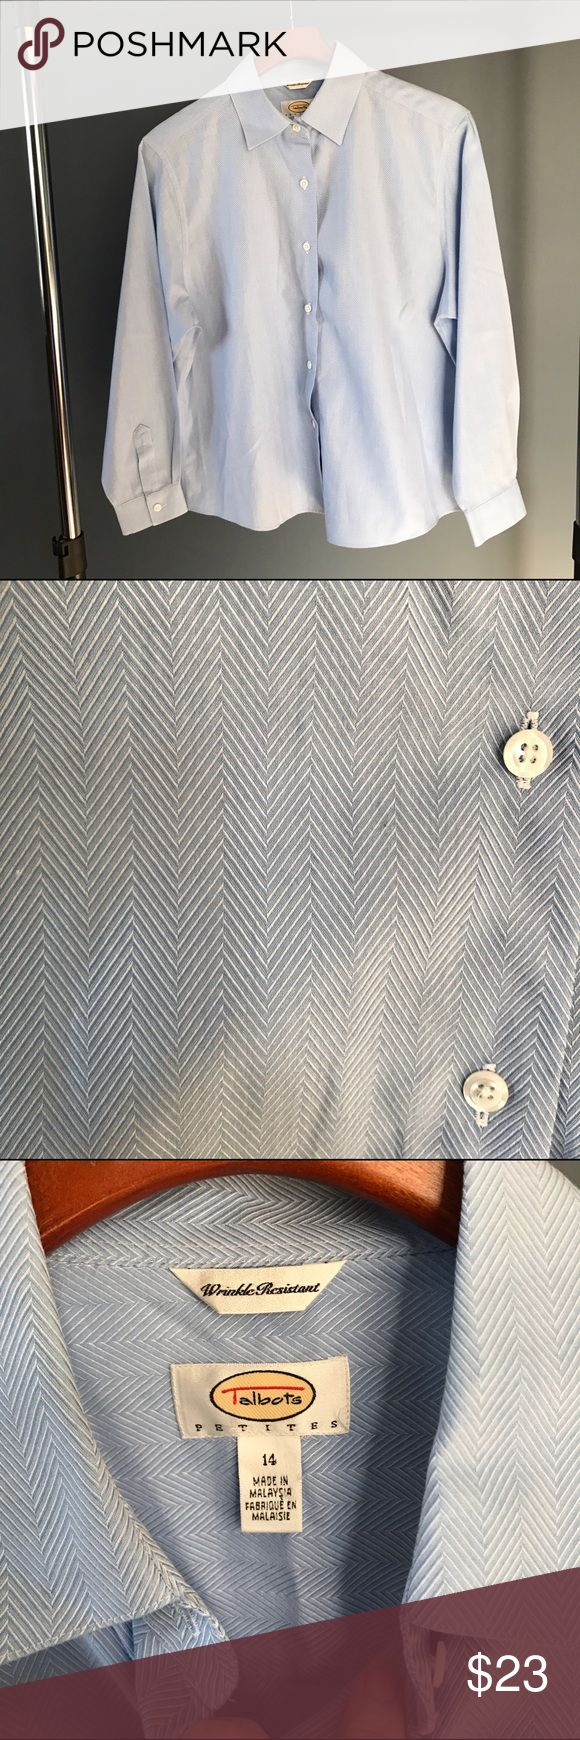 Talbots 14petite blue button down shirt Talbots size 14 Petite button down in blue. Has a nice herringbone type design shown in 2nd pic. Tag says wrinkle resistant-this has been folded in a storage bin for the summer. It usually needs a little pressing when it comes out of dryer but doesn't have those hard to get rid of wrinkles. Faster getting out of house!! Very good condition, no stains. 22 in from underarm to underarm laying flat, 25.75 in from bottom of collar to back bottom hem, 22 in…